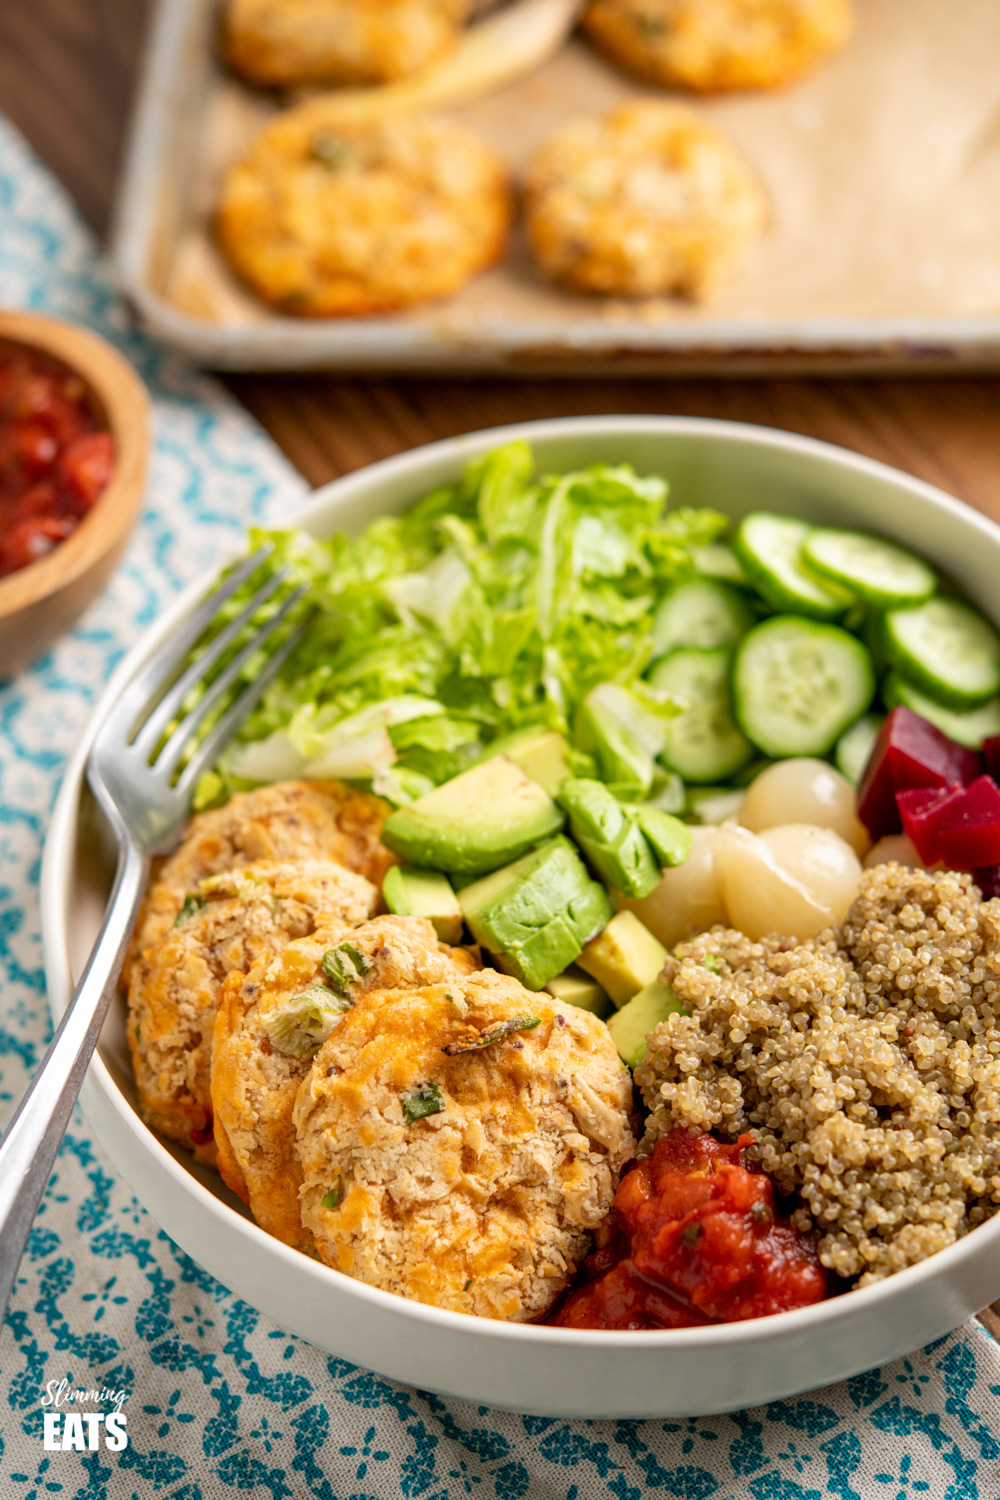 Cheddar Butter Bean Bites in cream bowl with quinoa, cucumber, lettuce, salsa, avocado, beets and picked onions